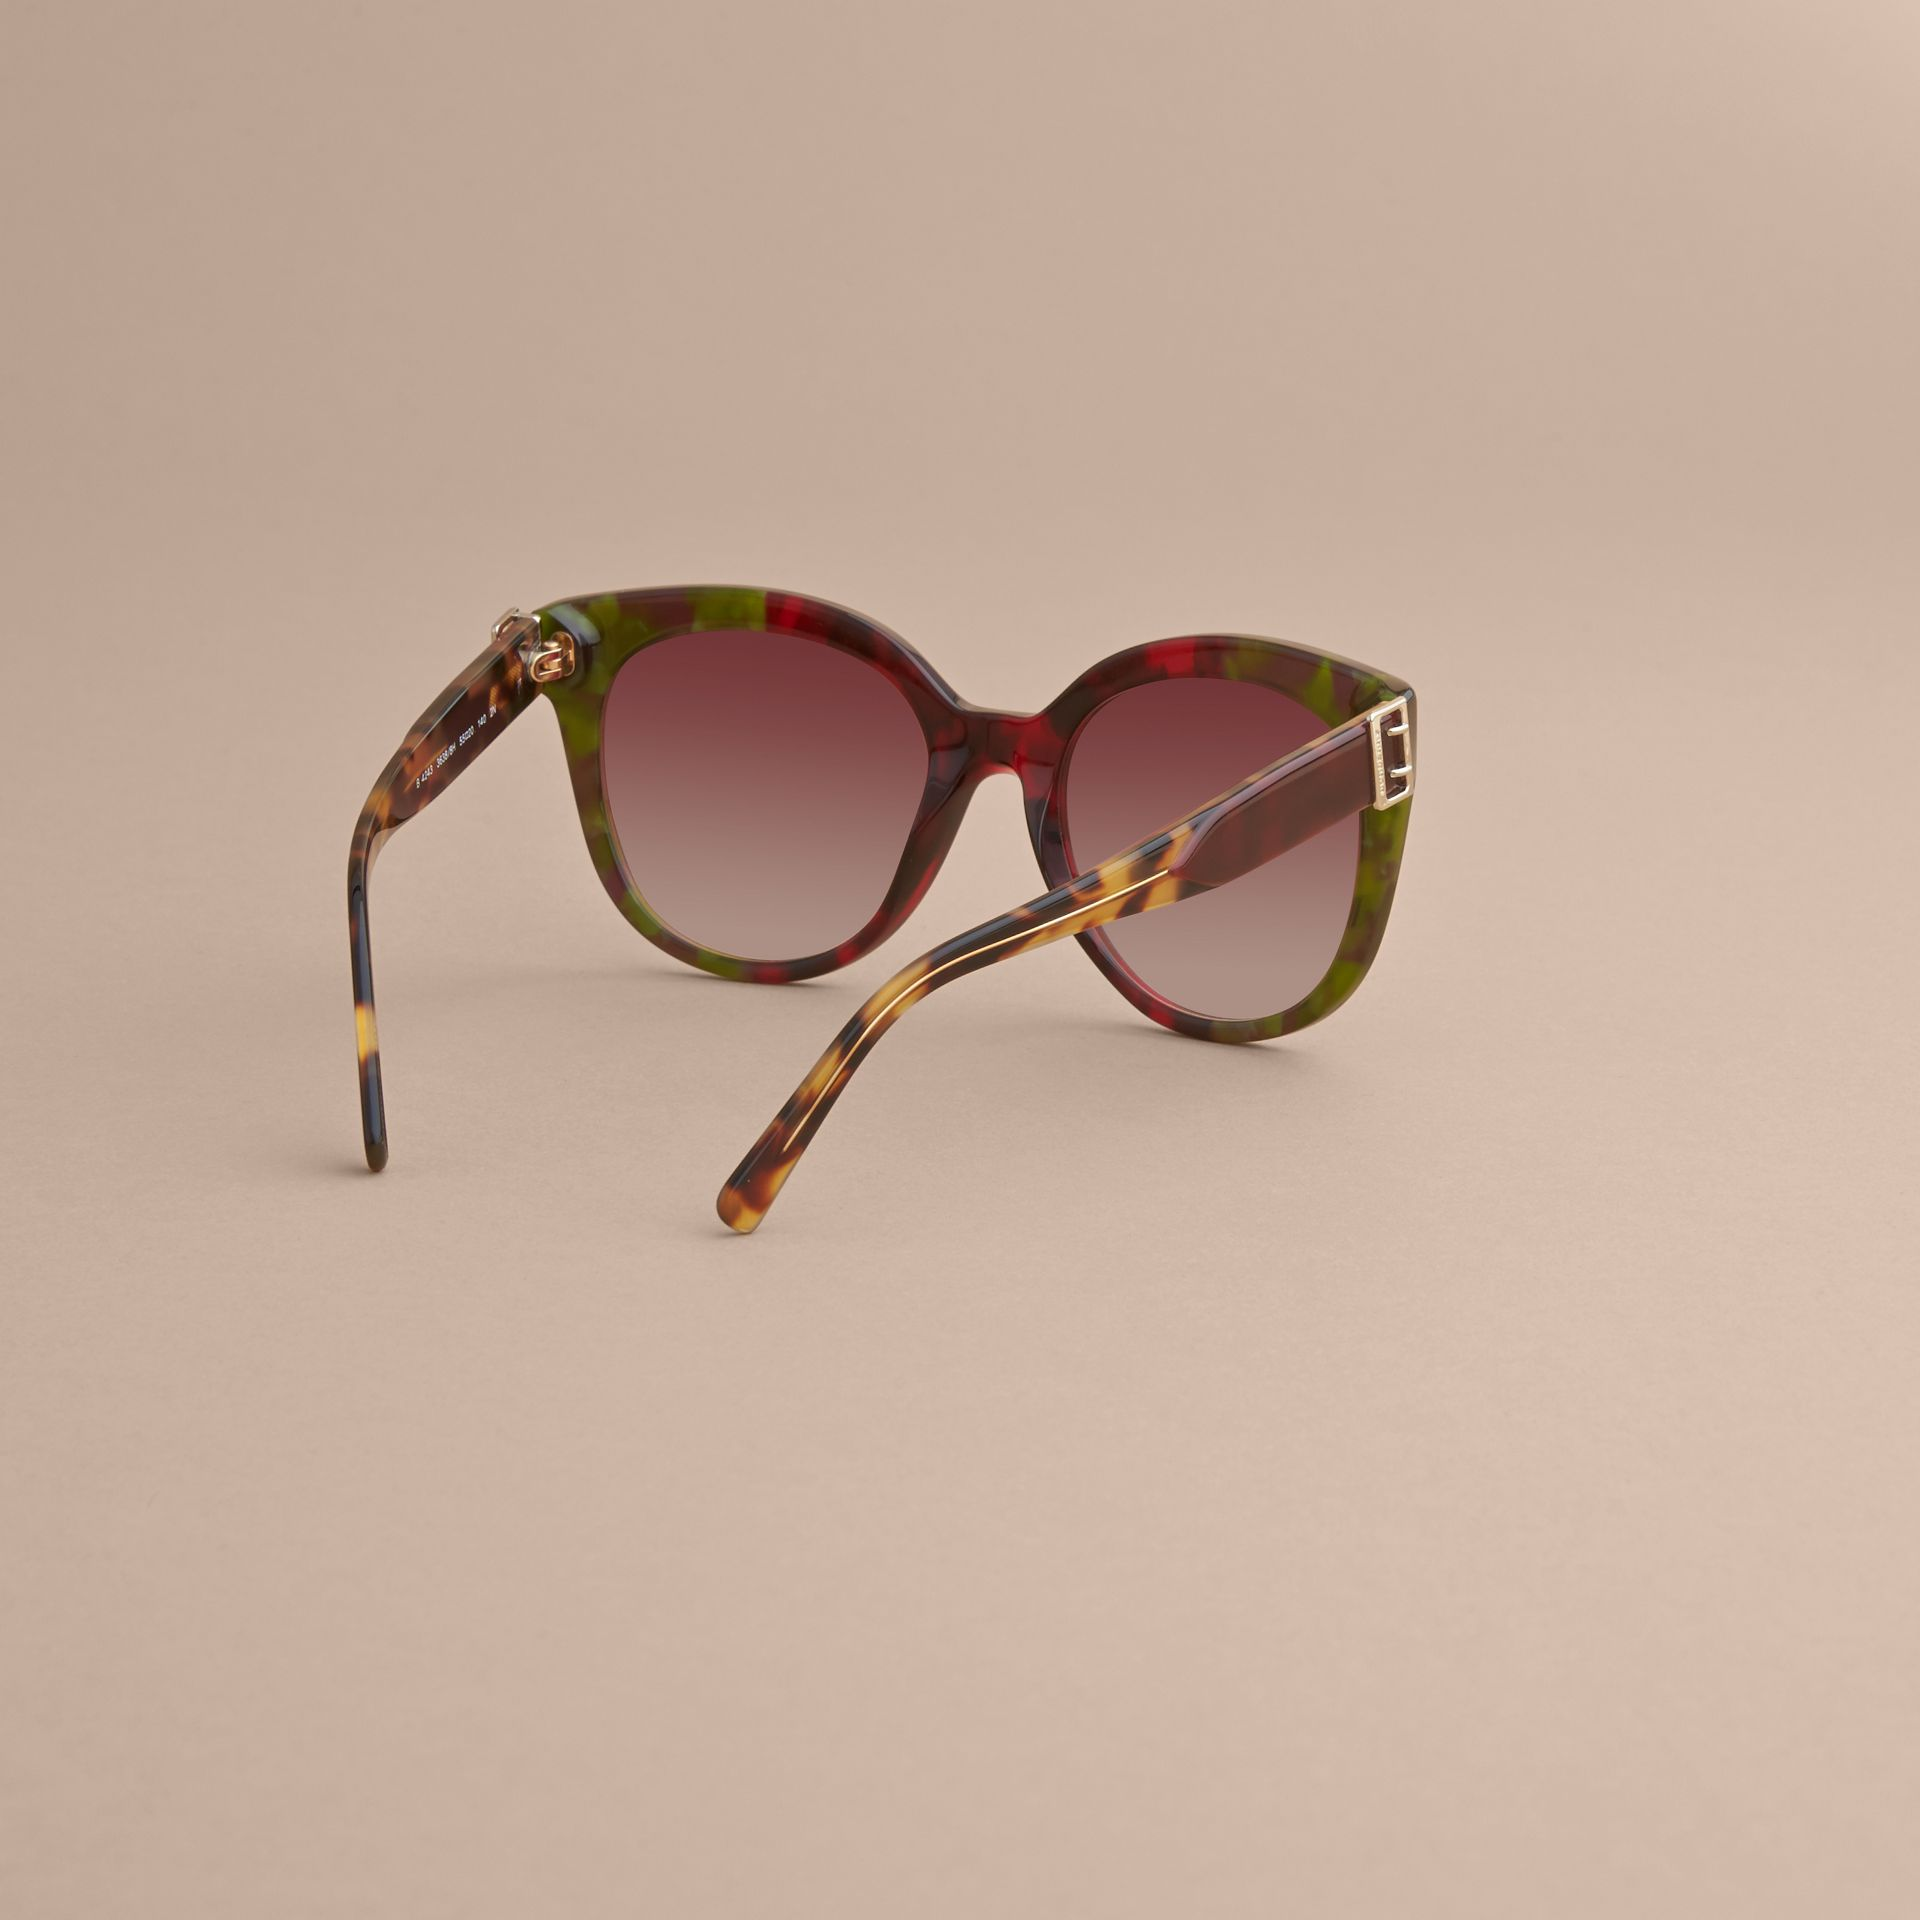 Buckle Detail Cat-eye Frame Sunglasses in Cardinal Red - Women | Burberry United Kingdom - gallery image 3